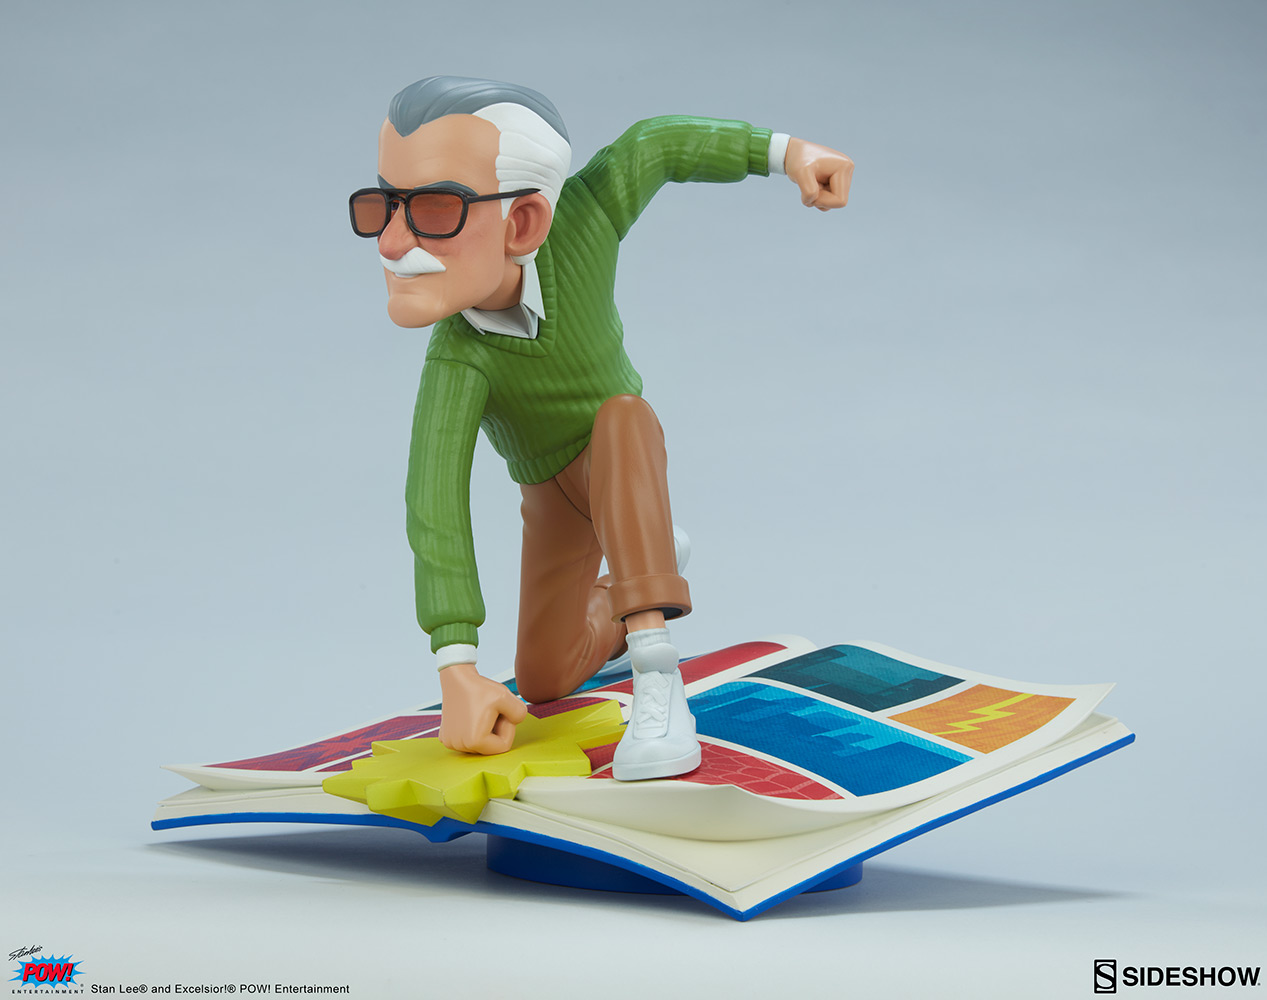 Link a The-Marvelous-Stan-Lee-Designer-Collectible-Figure-2